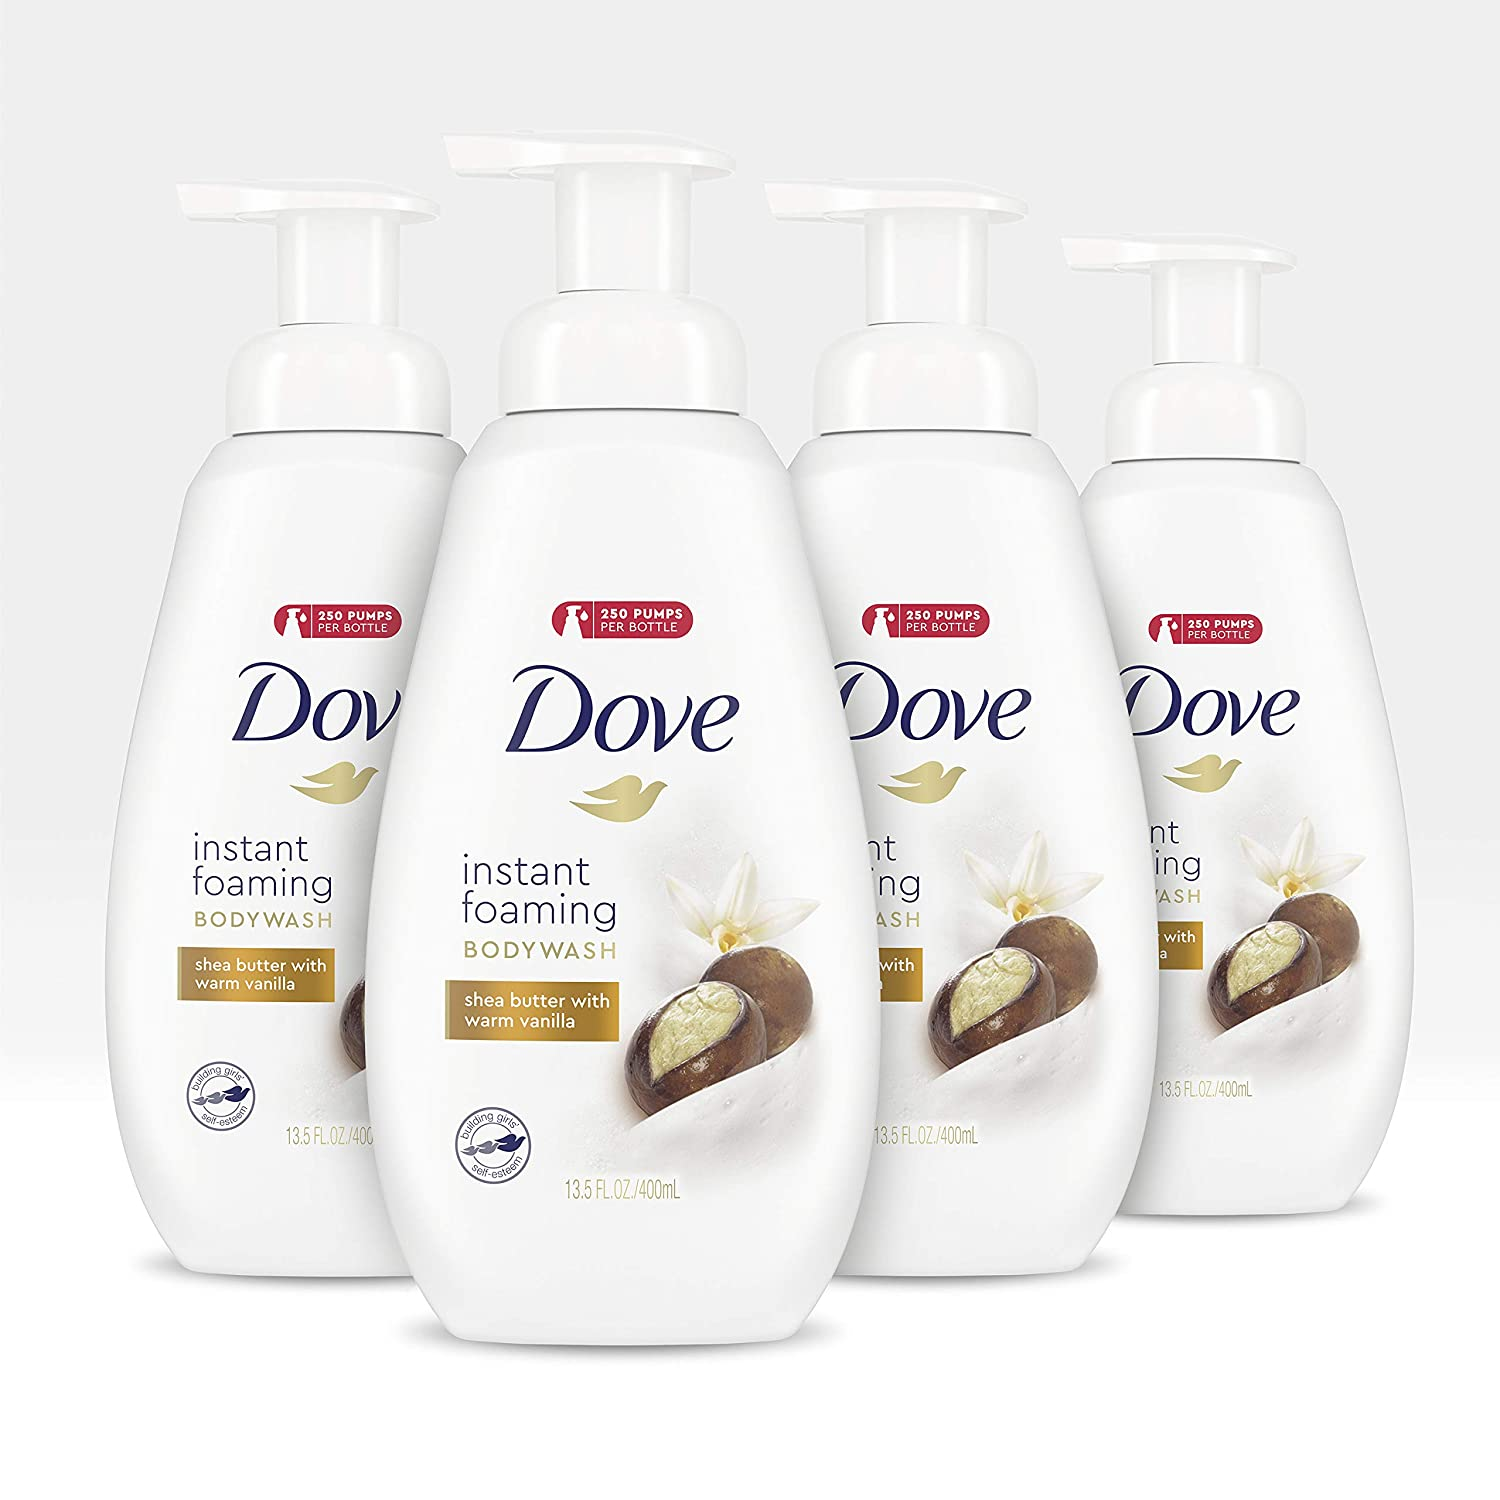 Amazon Com Dove Purely Pampering Body Wash With Nutriummoisture Technology Shea Butter And Vanilla Paraben Free Bodywash 13 5 Oz 4 Count Beauty